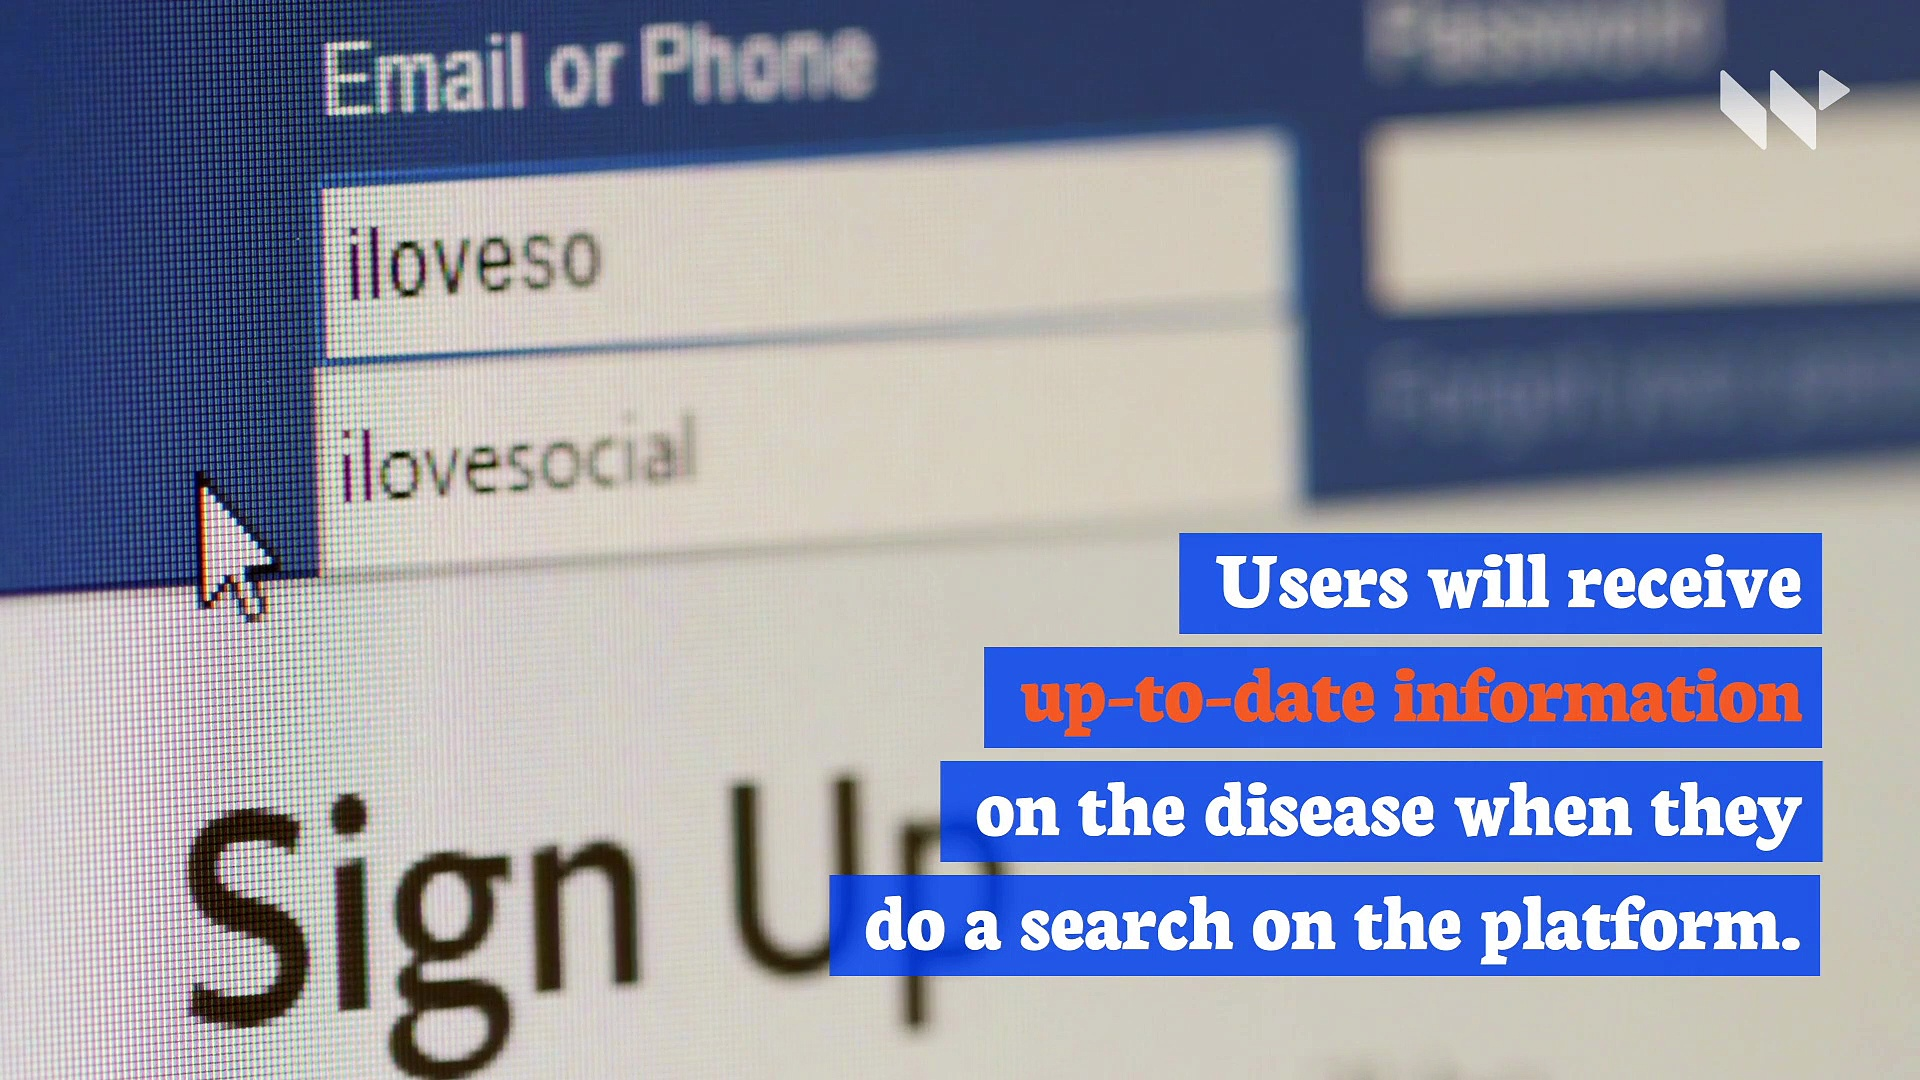 Facebook Giving Free Ad Space to the World Health Organization